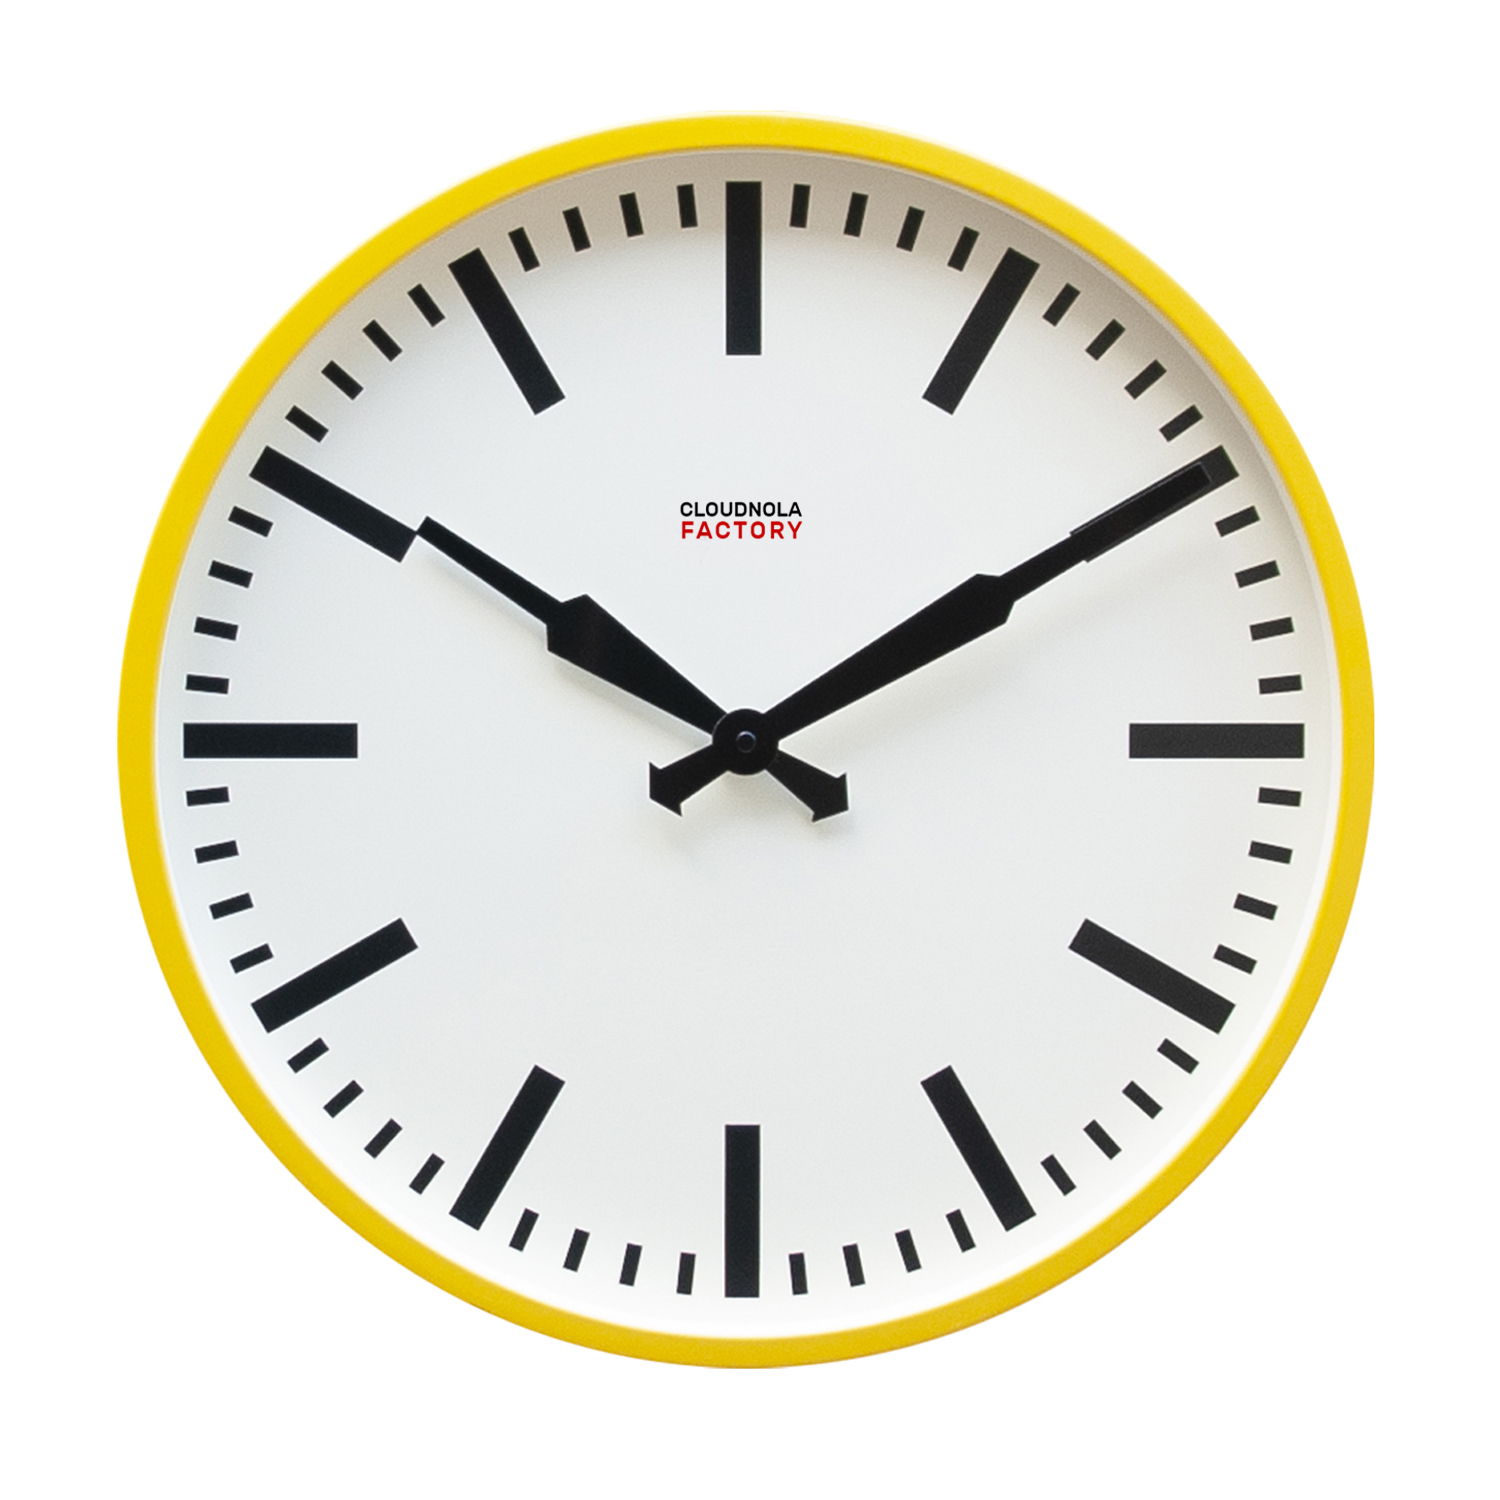 Cloudnola Factory Railway clock 45cm Yellow Stripe